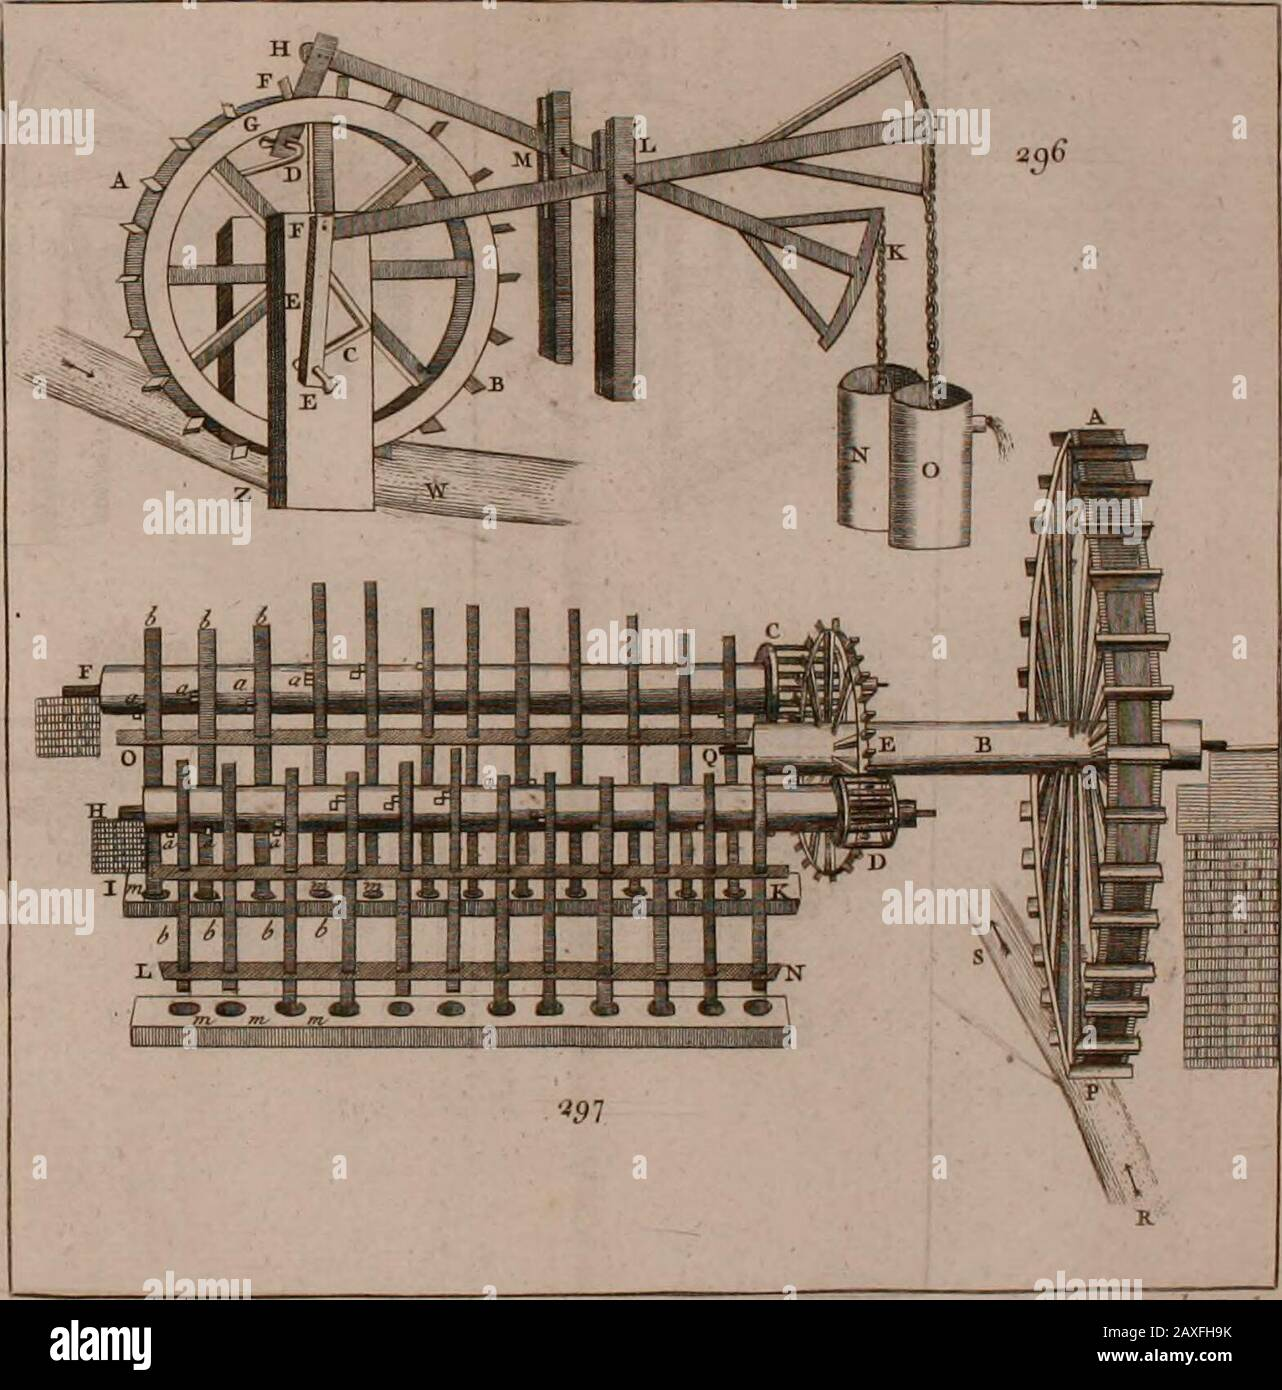 The principles of mechanics : explaining and demonstrating the general laws of motion, the laws of gravity, motion of descending bodies, projectiles, mechanic powers, pendulums, centers of gravity, &cstrength and stress of timber, hydrostatics, and construction of machines : a work very necessary to be known, by all gentlemen, and others, that desire to have an insight into the works of nature and art : and extremely useful to all sorts of artificers, particularly to architects, engineers, shipwrights, millwrights, watchmakers, &cor any that work in a mechanical way : illustrated with forty-th Stock Photo